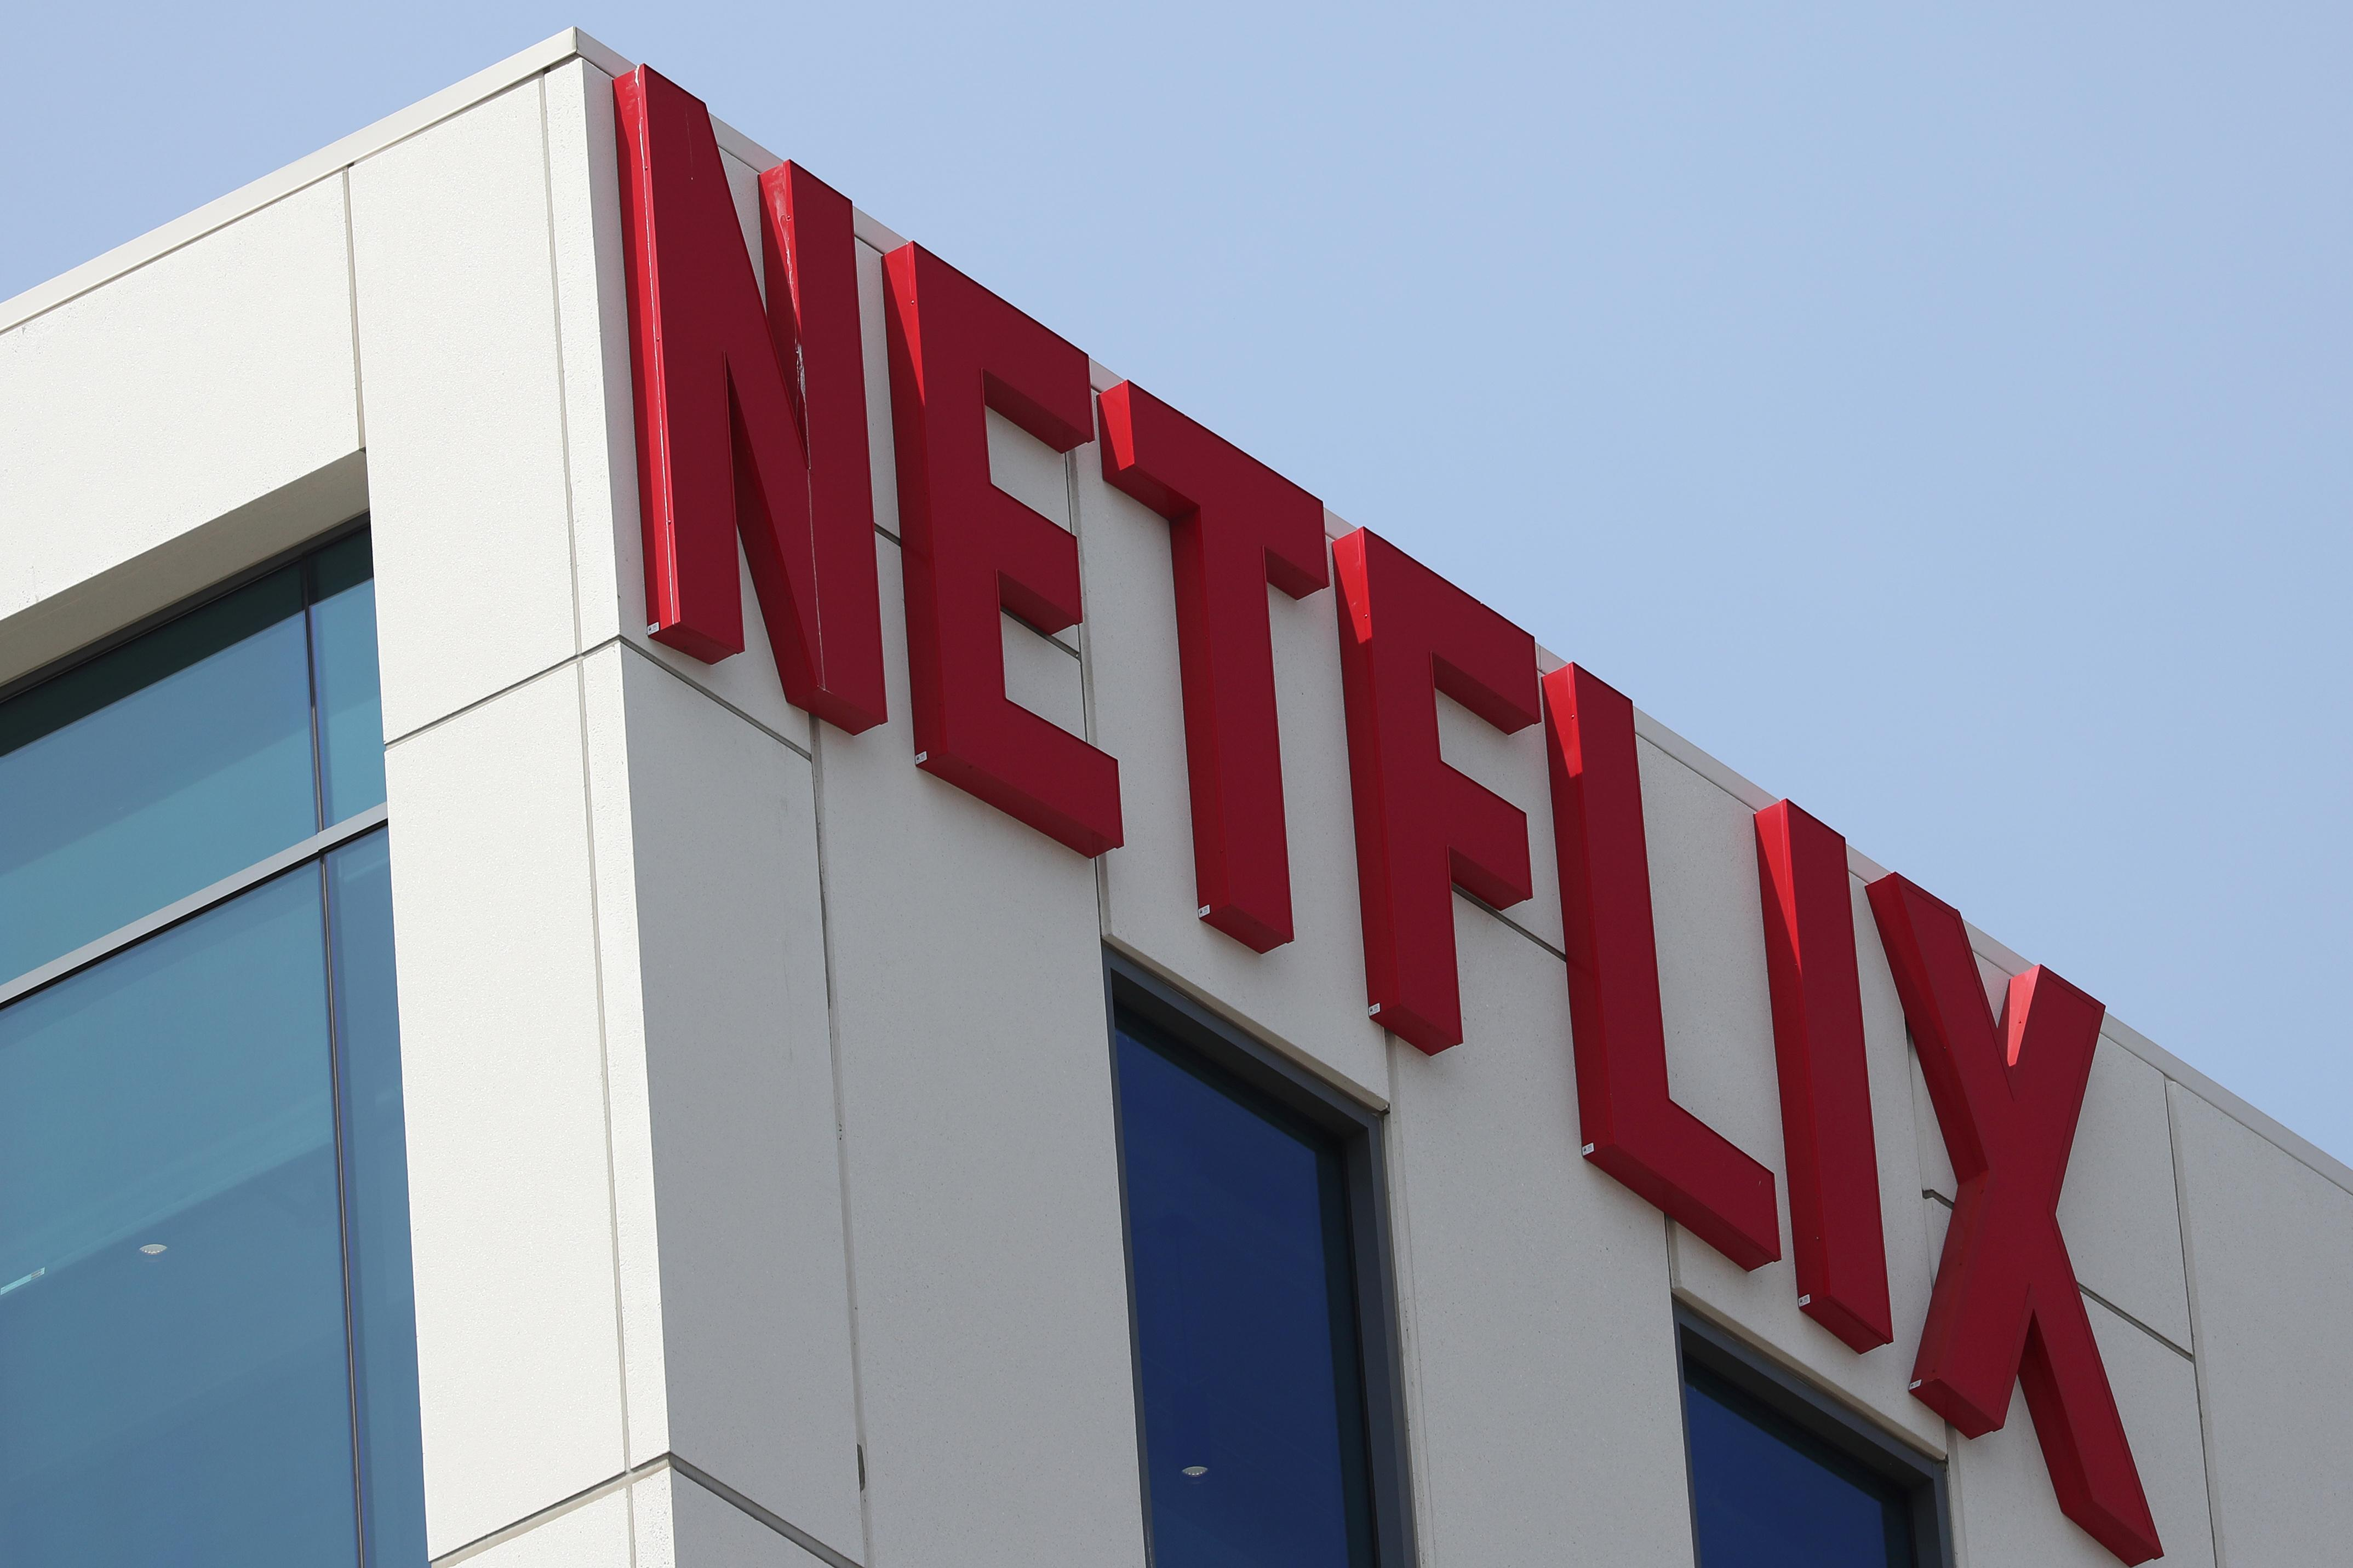 Why Netflix's best days are behind it